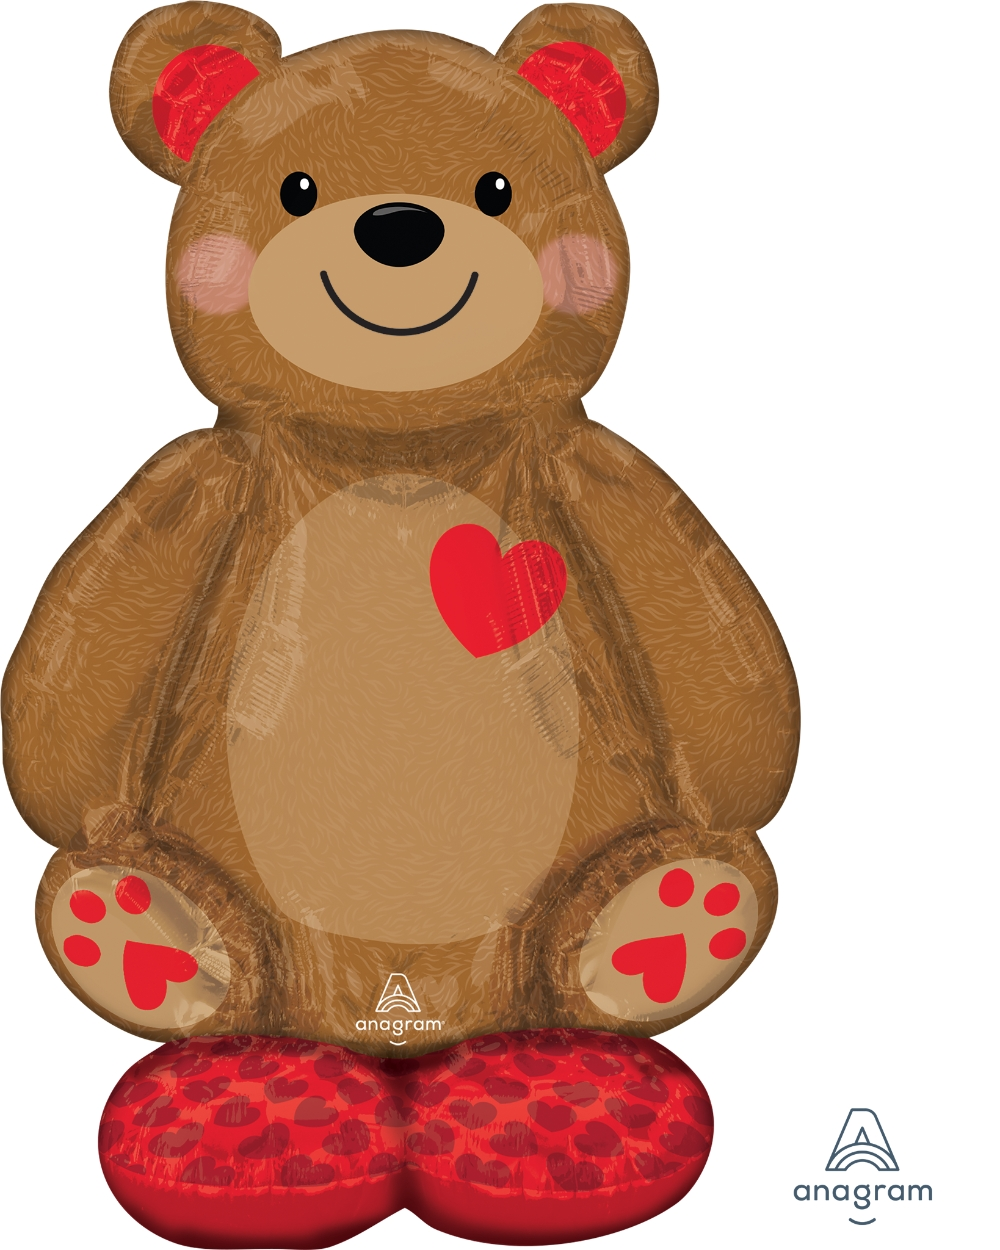 Airfill Only Airloonz Consumer Inflatable Big Cuddly Bear Foil Balloon